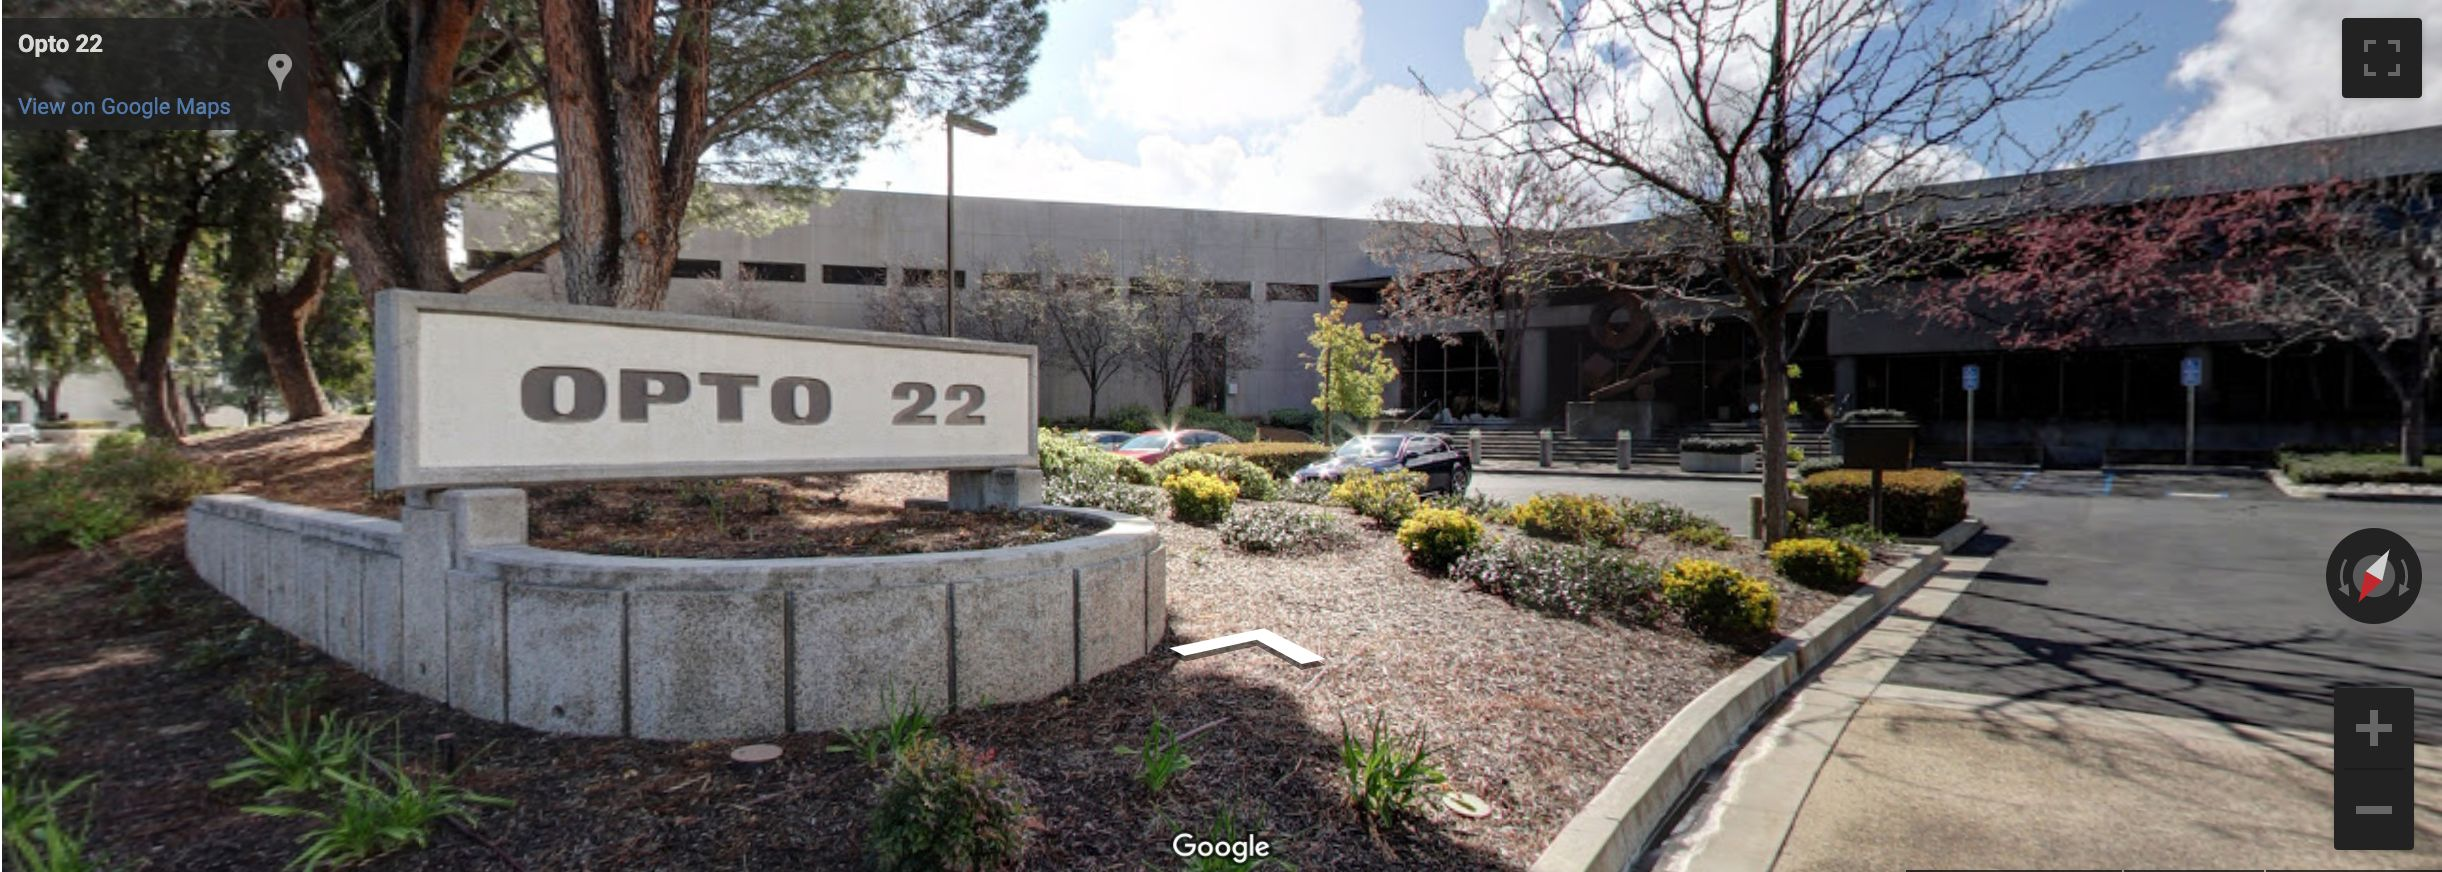 Google Street Maps - Front of Opto 22 headquarters building